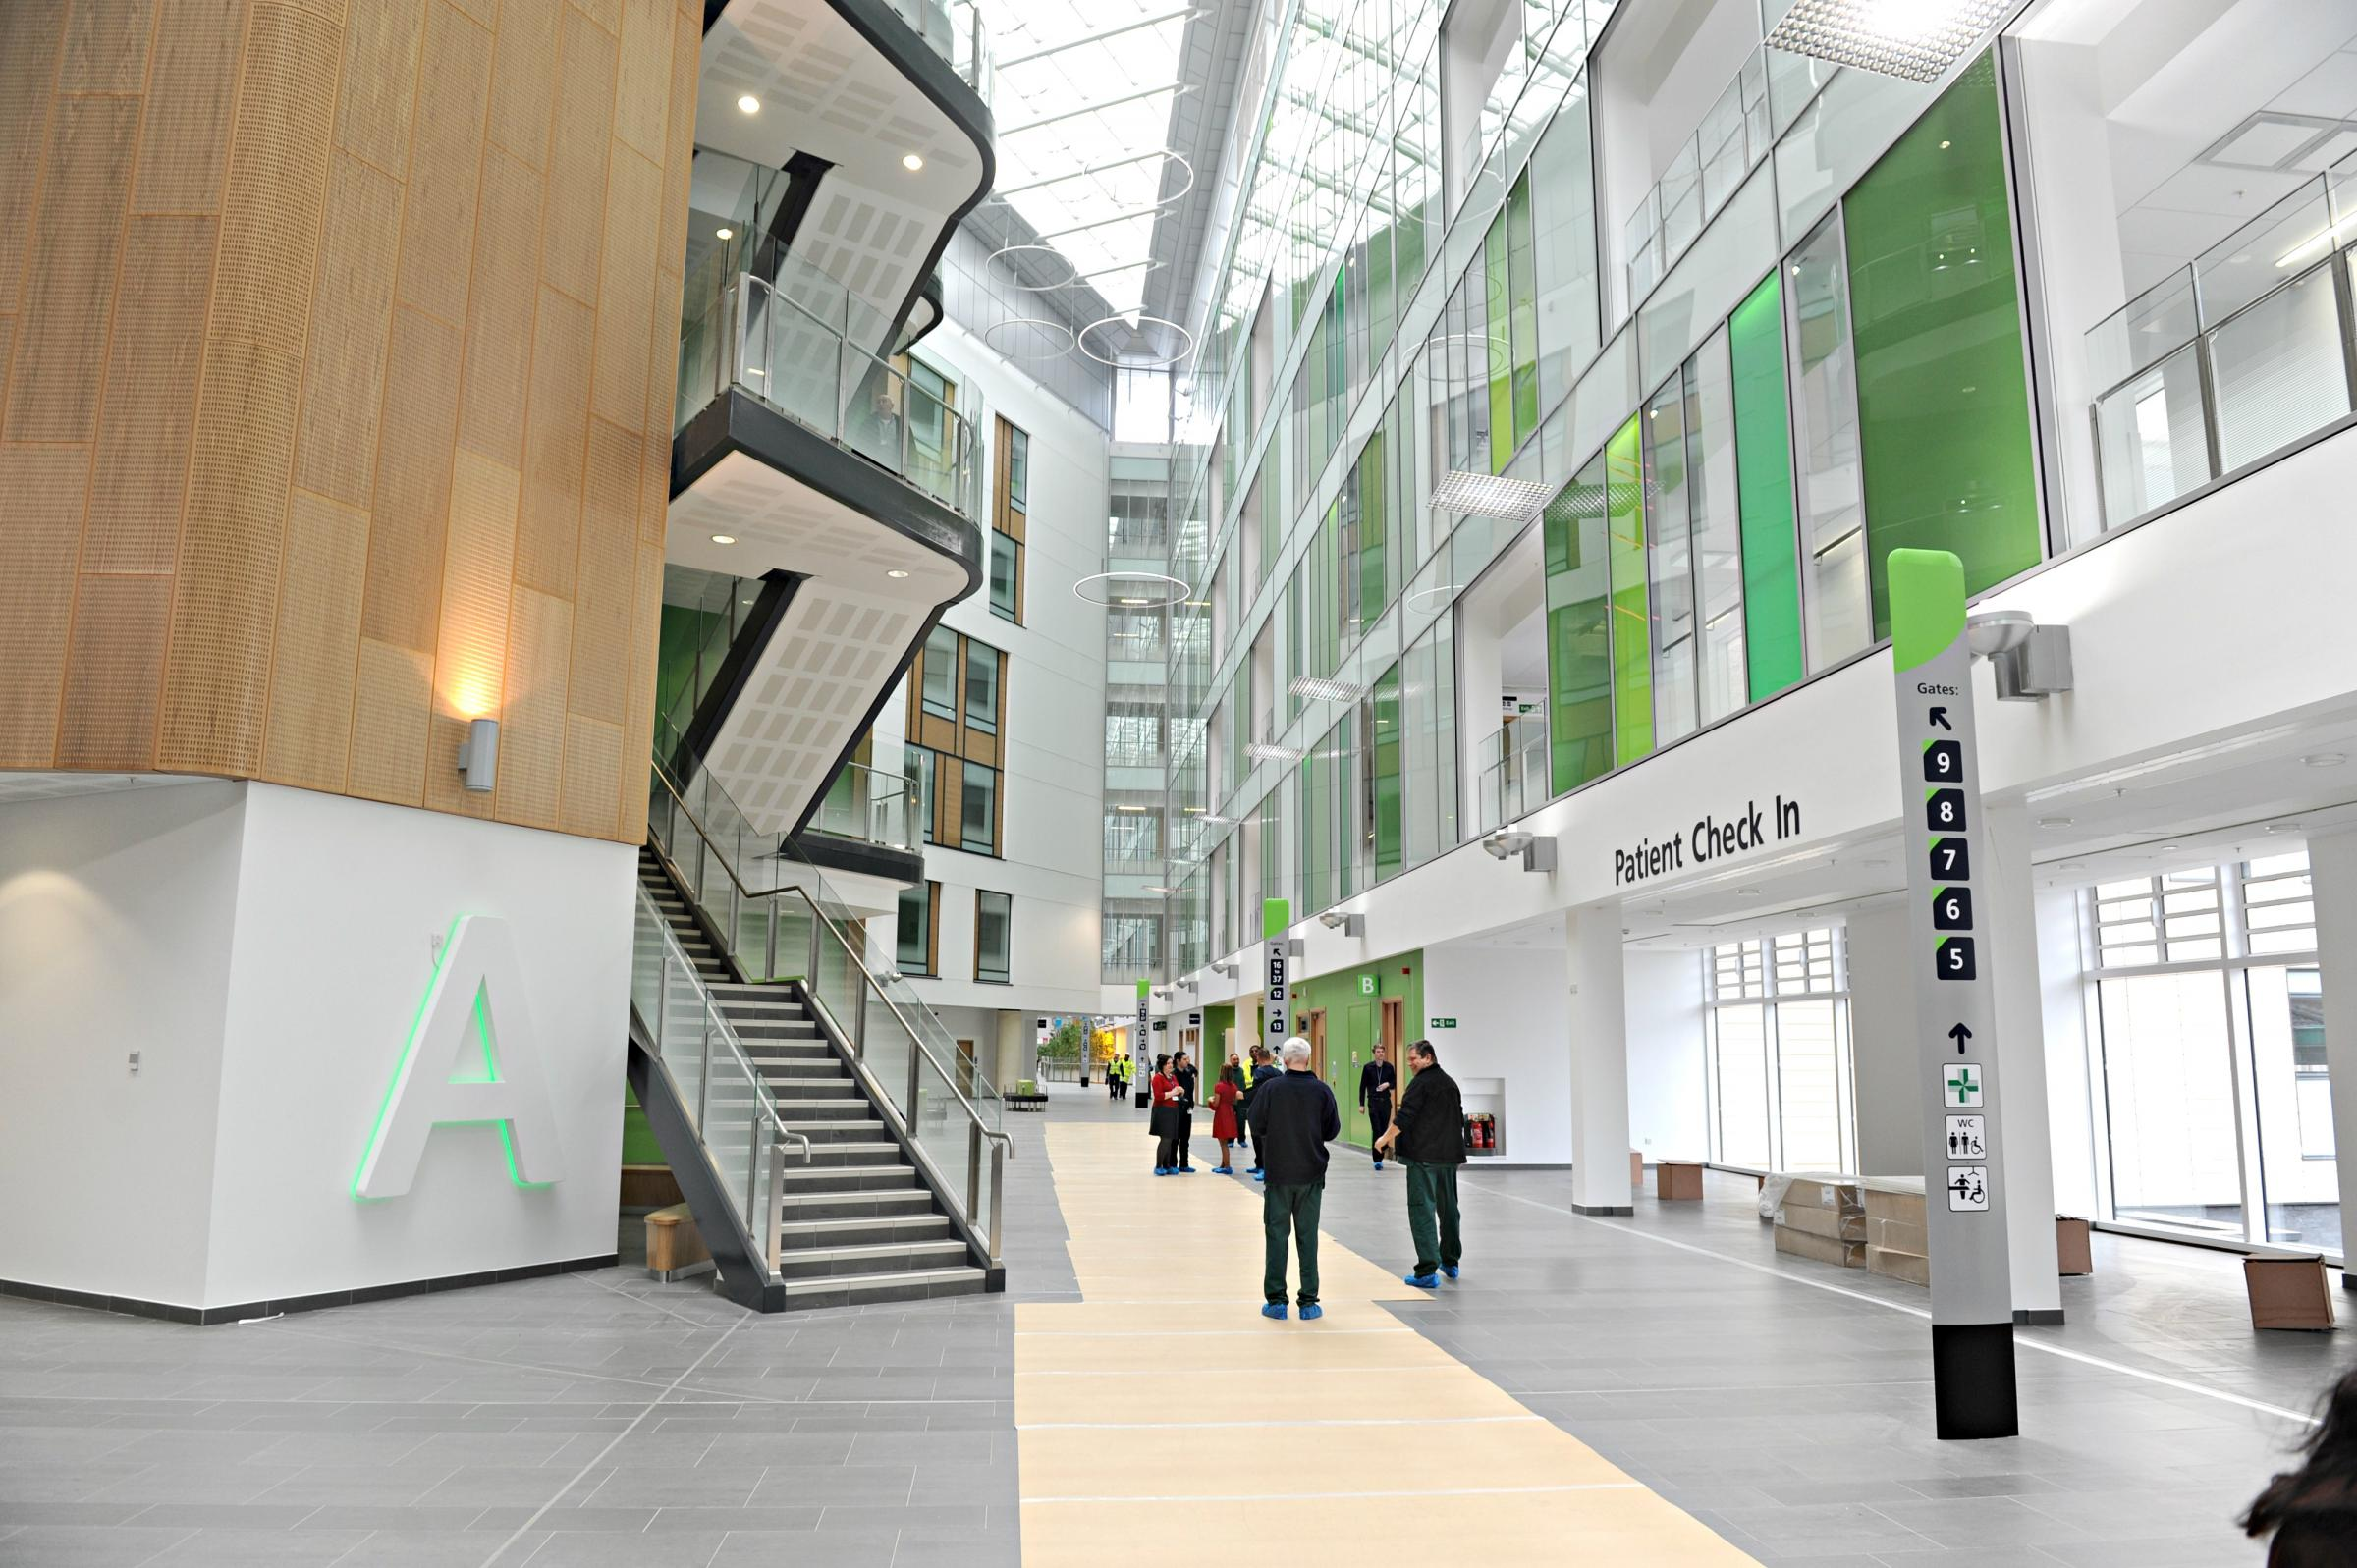 A&E services transfer to the new Brunel building at Southmead Hospital this Monday